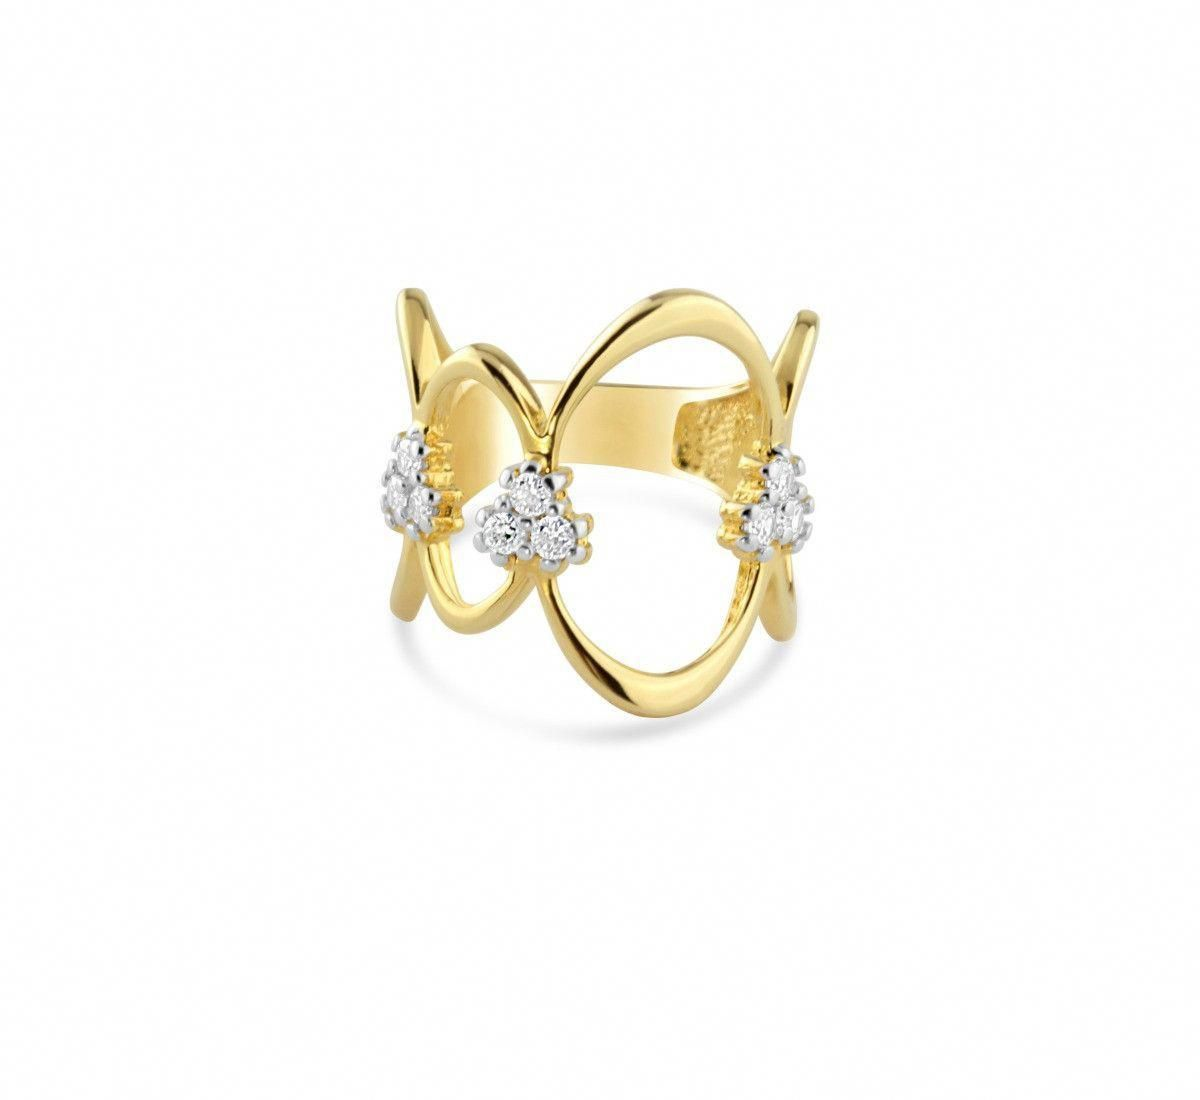 Bella 18k Yellow Gold Filled Cz Ring Lush Jewels Goldrateindia Rate